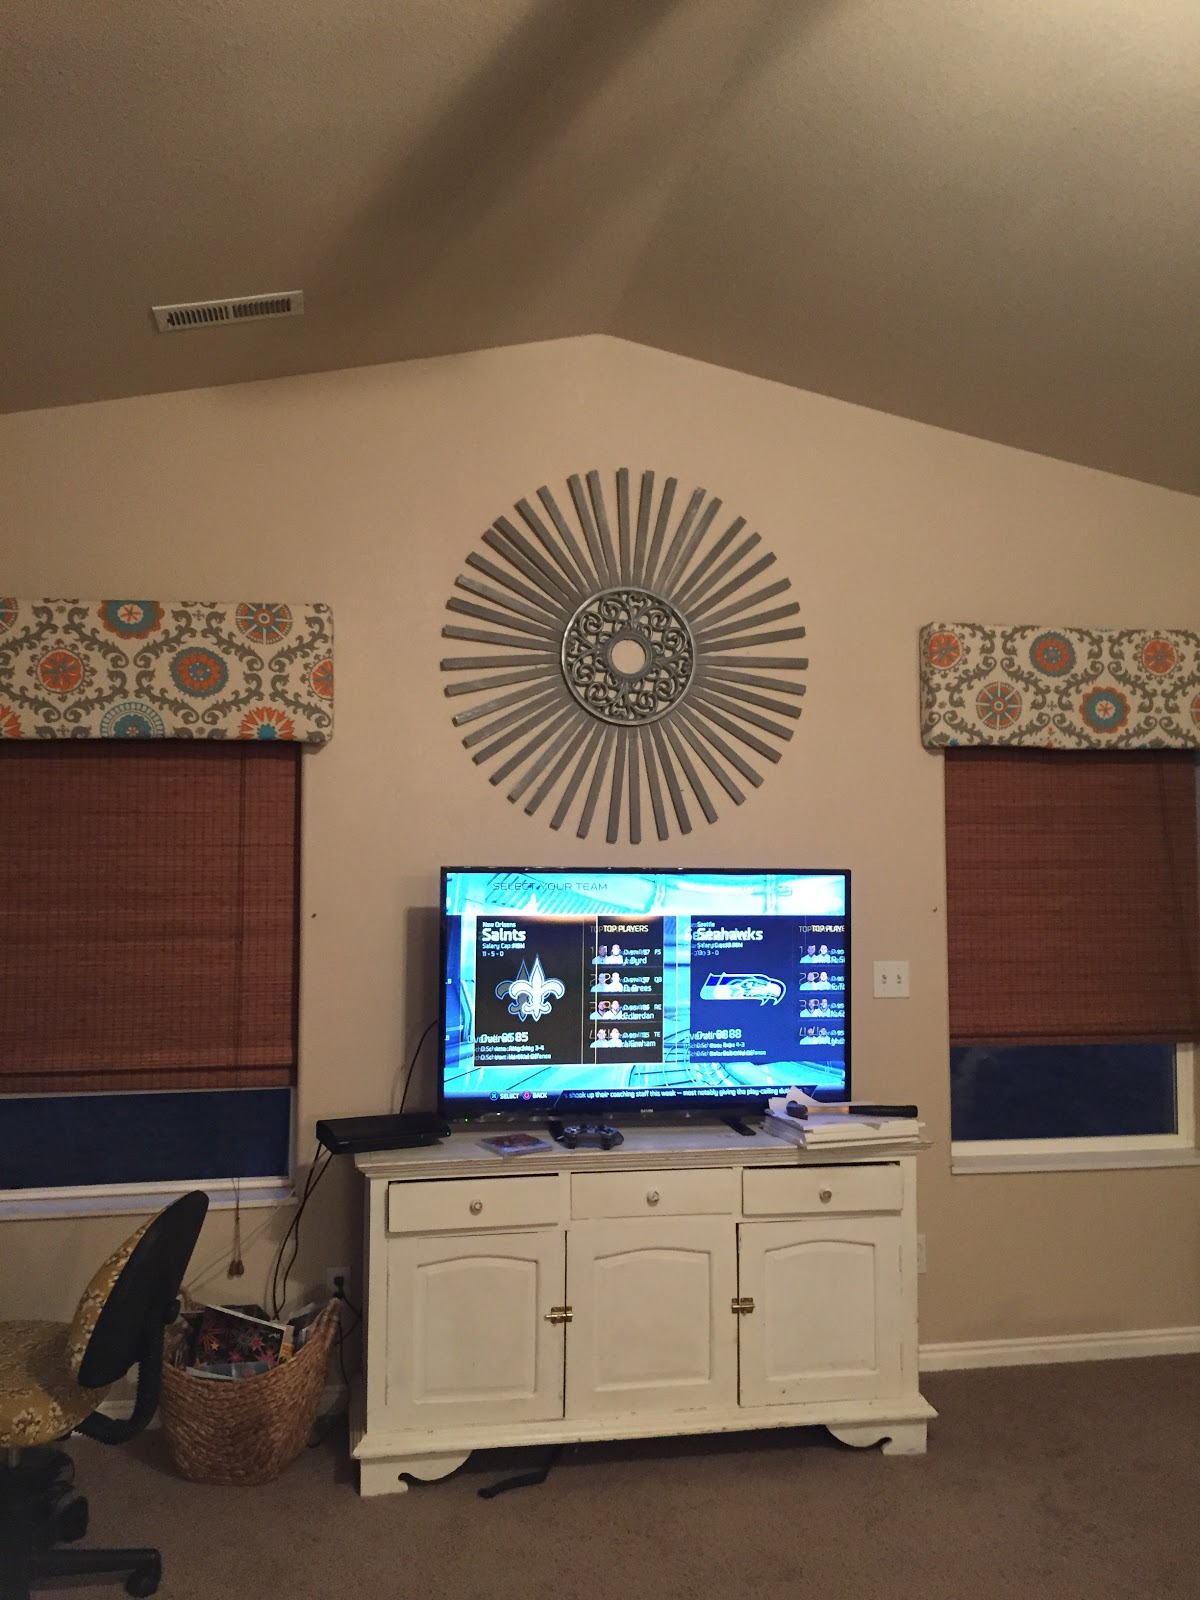 Sunburst Tutorial- Big Look for Little money, decorate above TV, True Value Hardware,